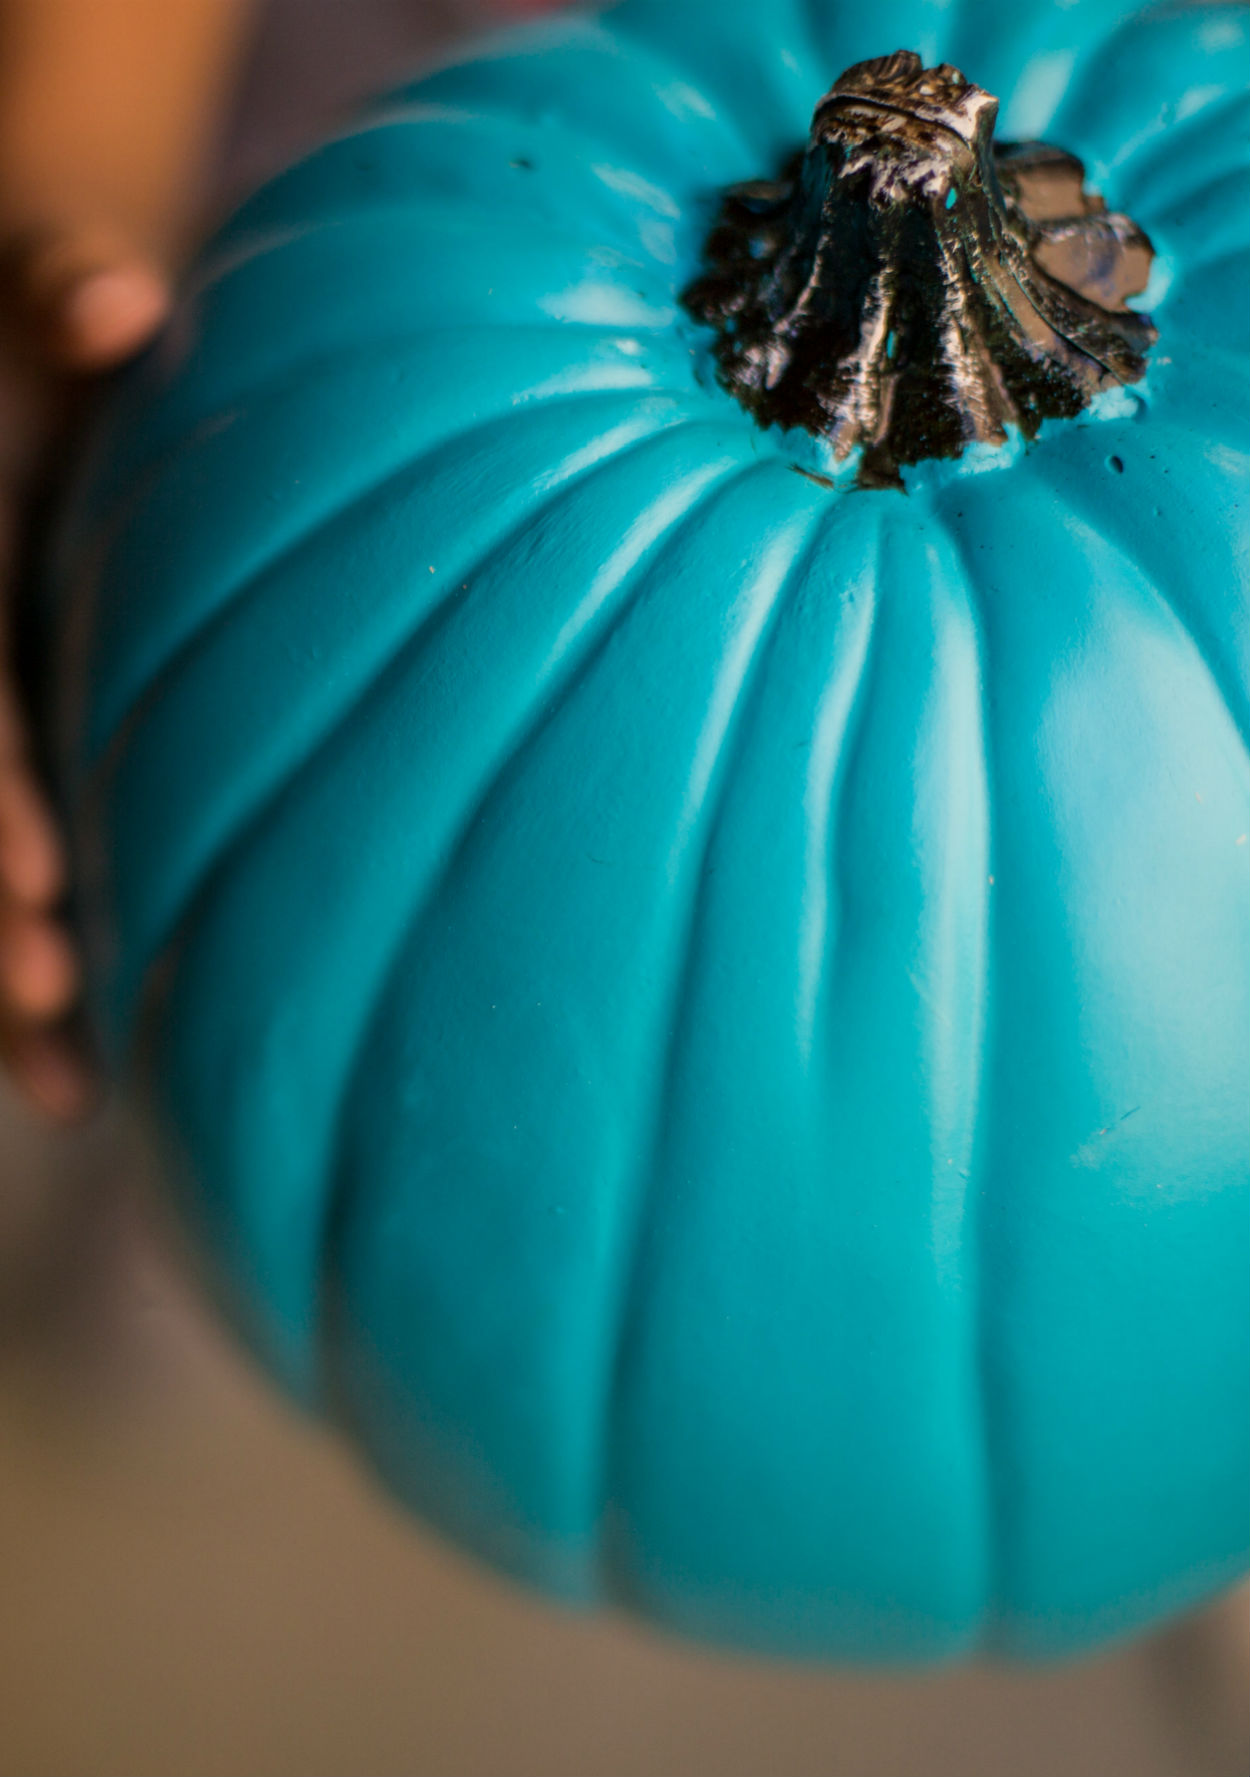 The Teal Pumpkin Project Helps Protect Kids with Food Allergies